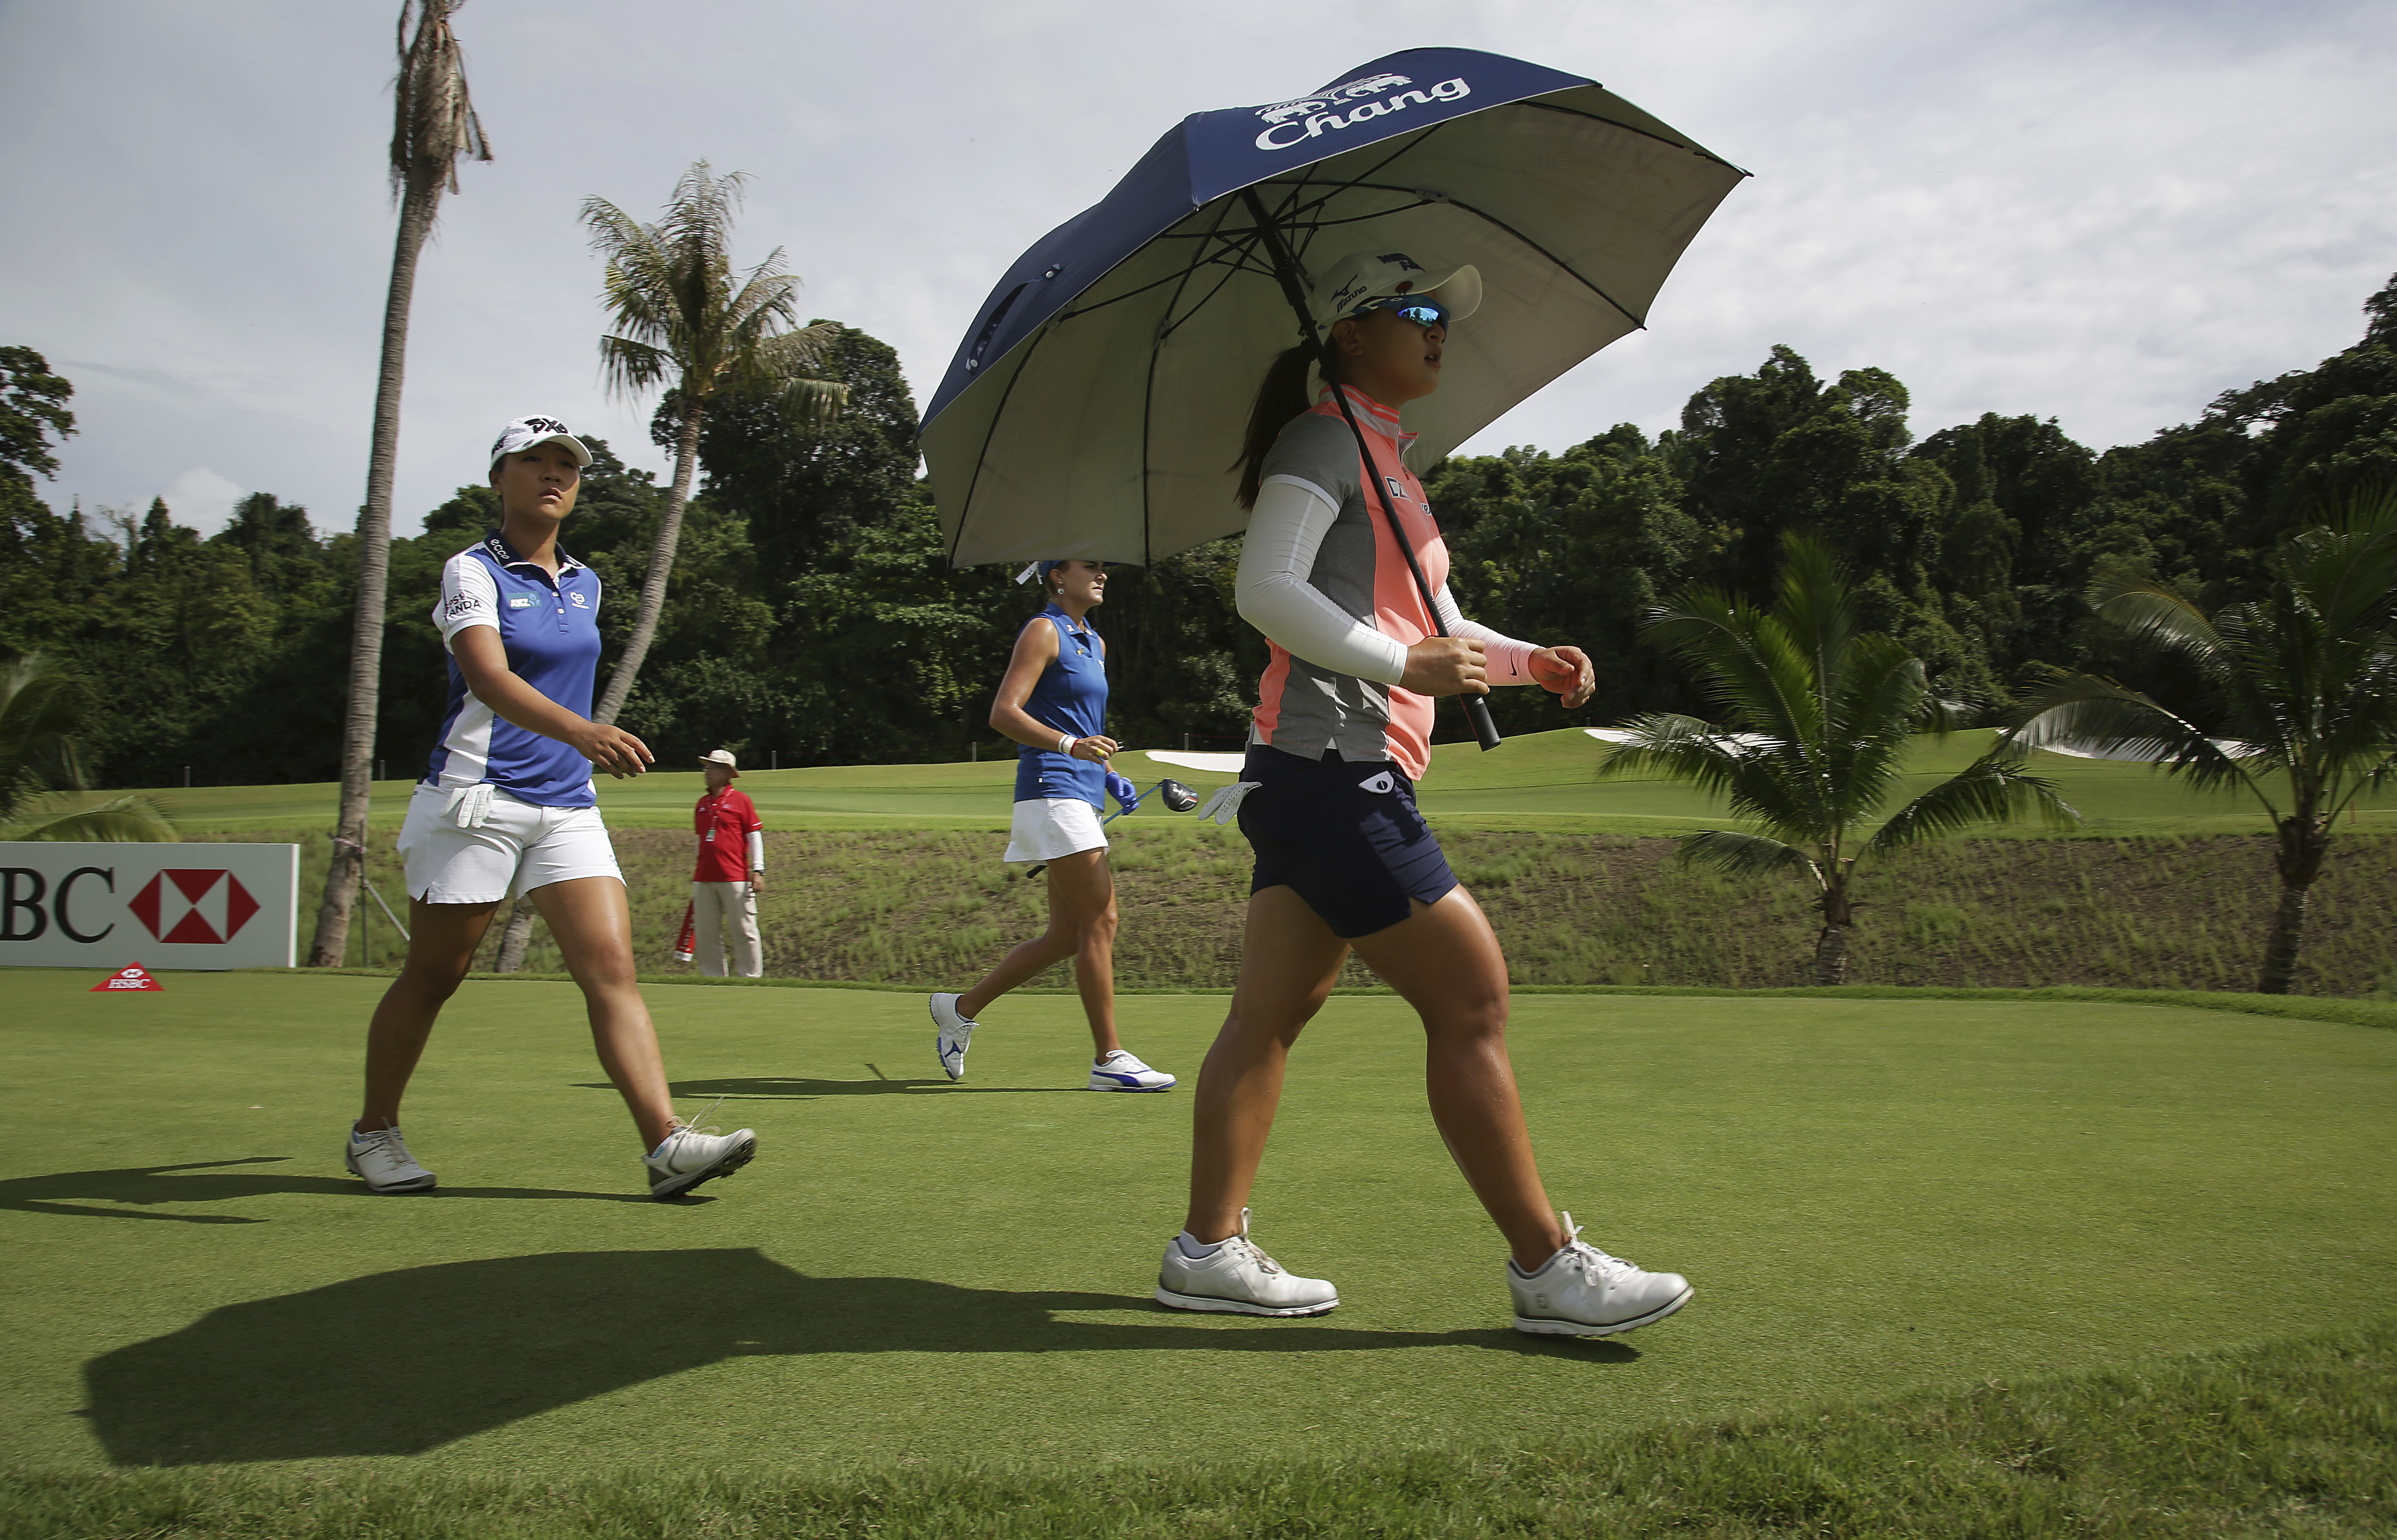 Golfers Lydia Ko of New Zealand, left, Sei Young Kim of South Korea, right, and Lexi Thompson of the United States, center, walk on the third hole during the HSBC Women's Champions golf tournament held at Sentosa Golf Club's Tanjong course on Thursday, Ma